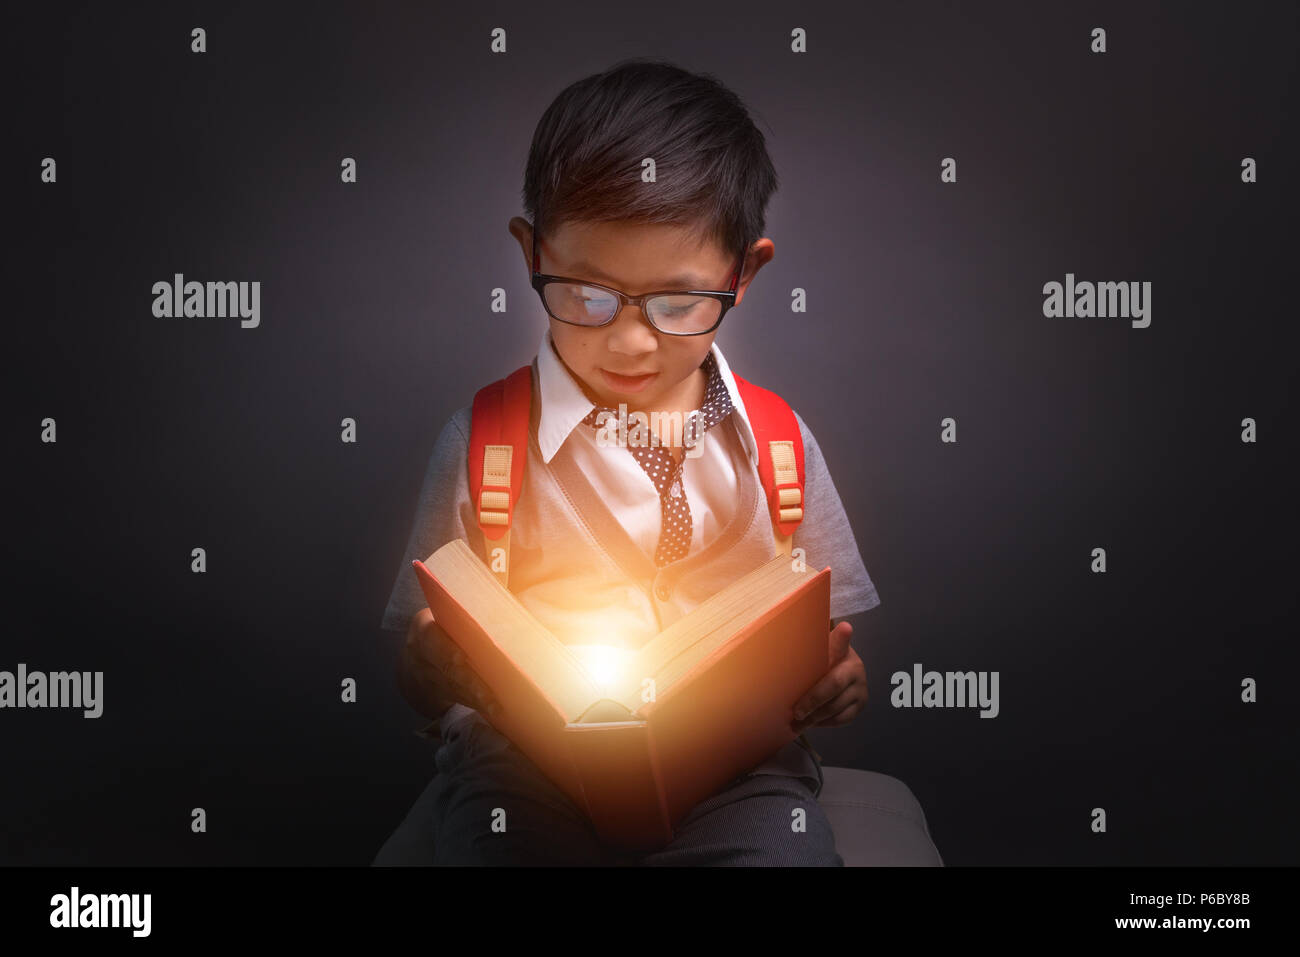 Back to school, Child opened a magic book, Image dark tone - Stock Image